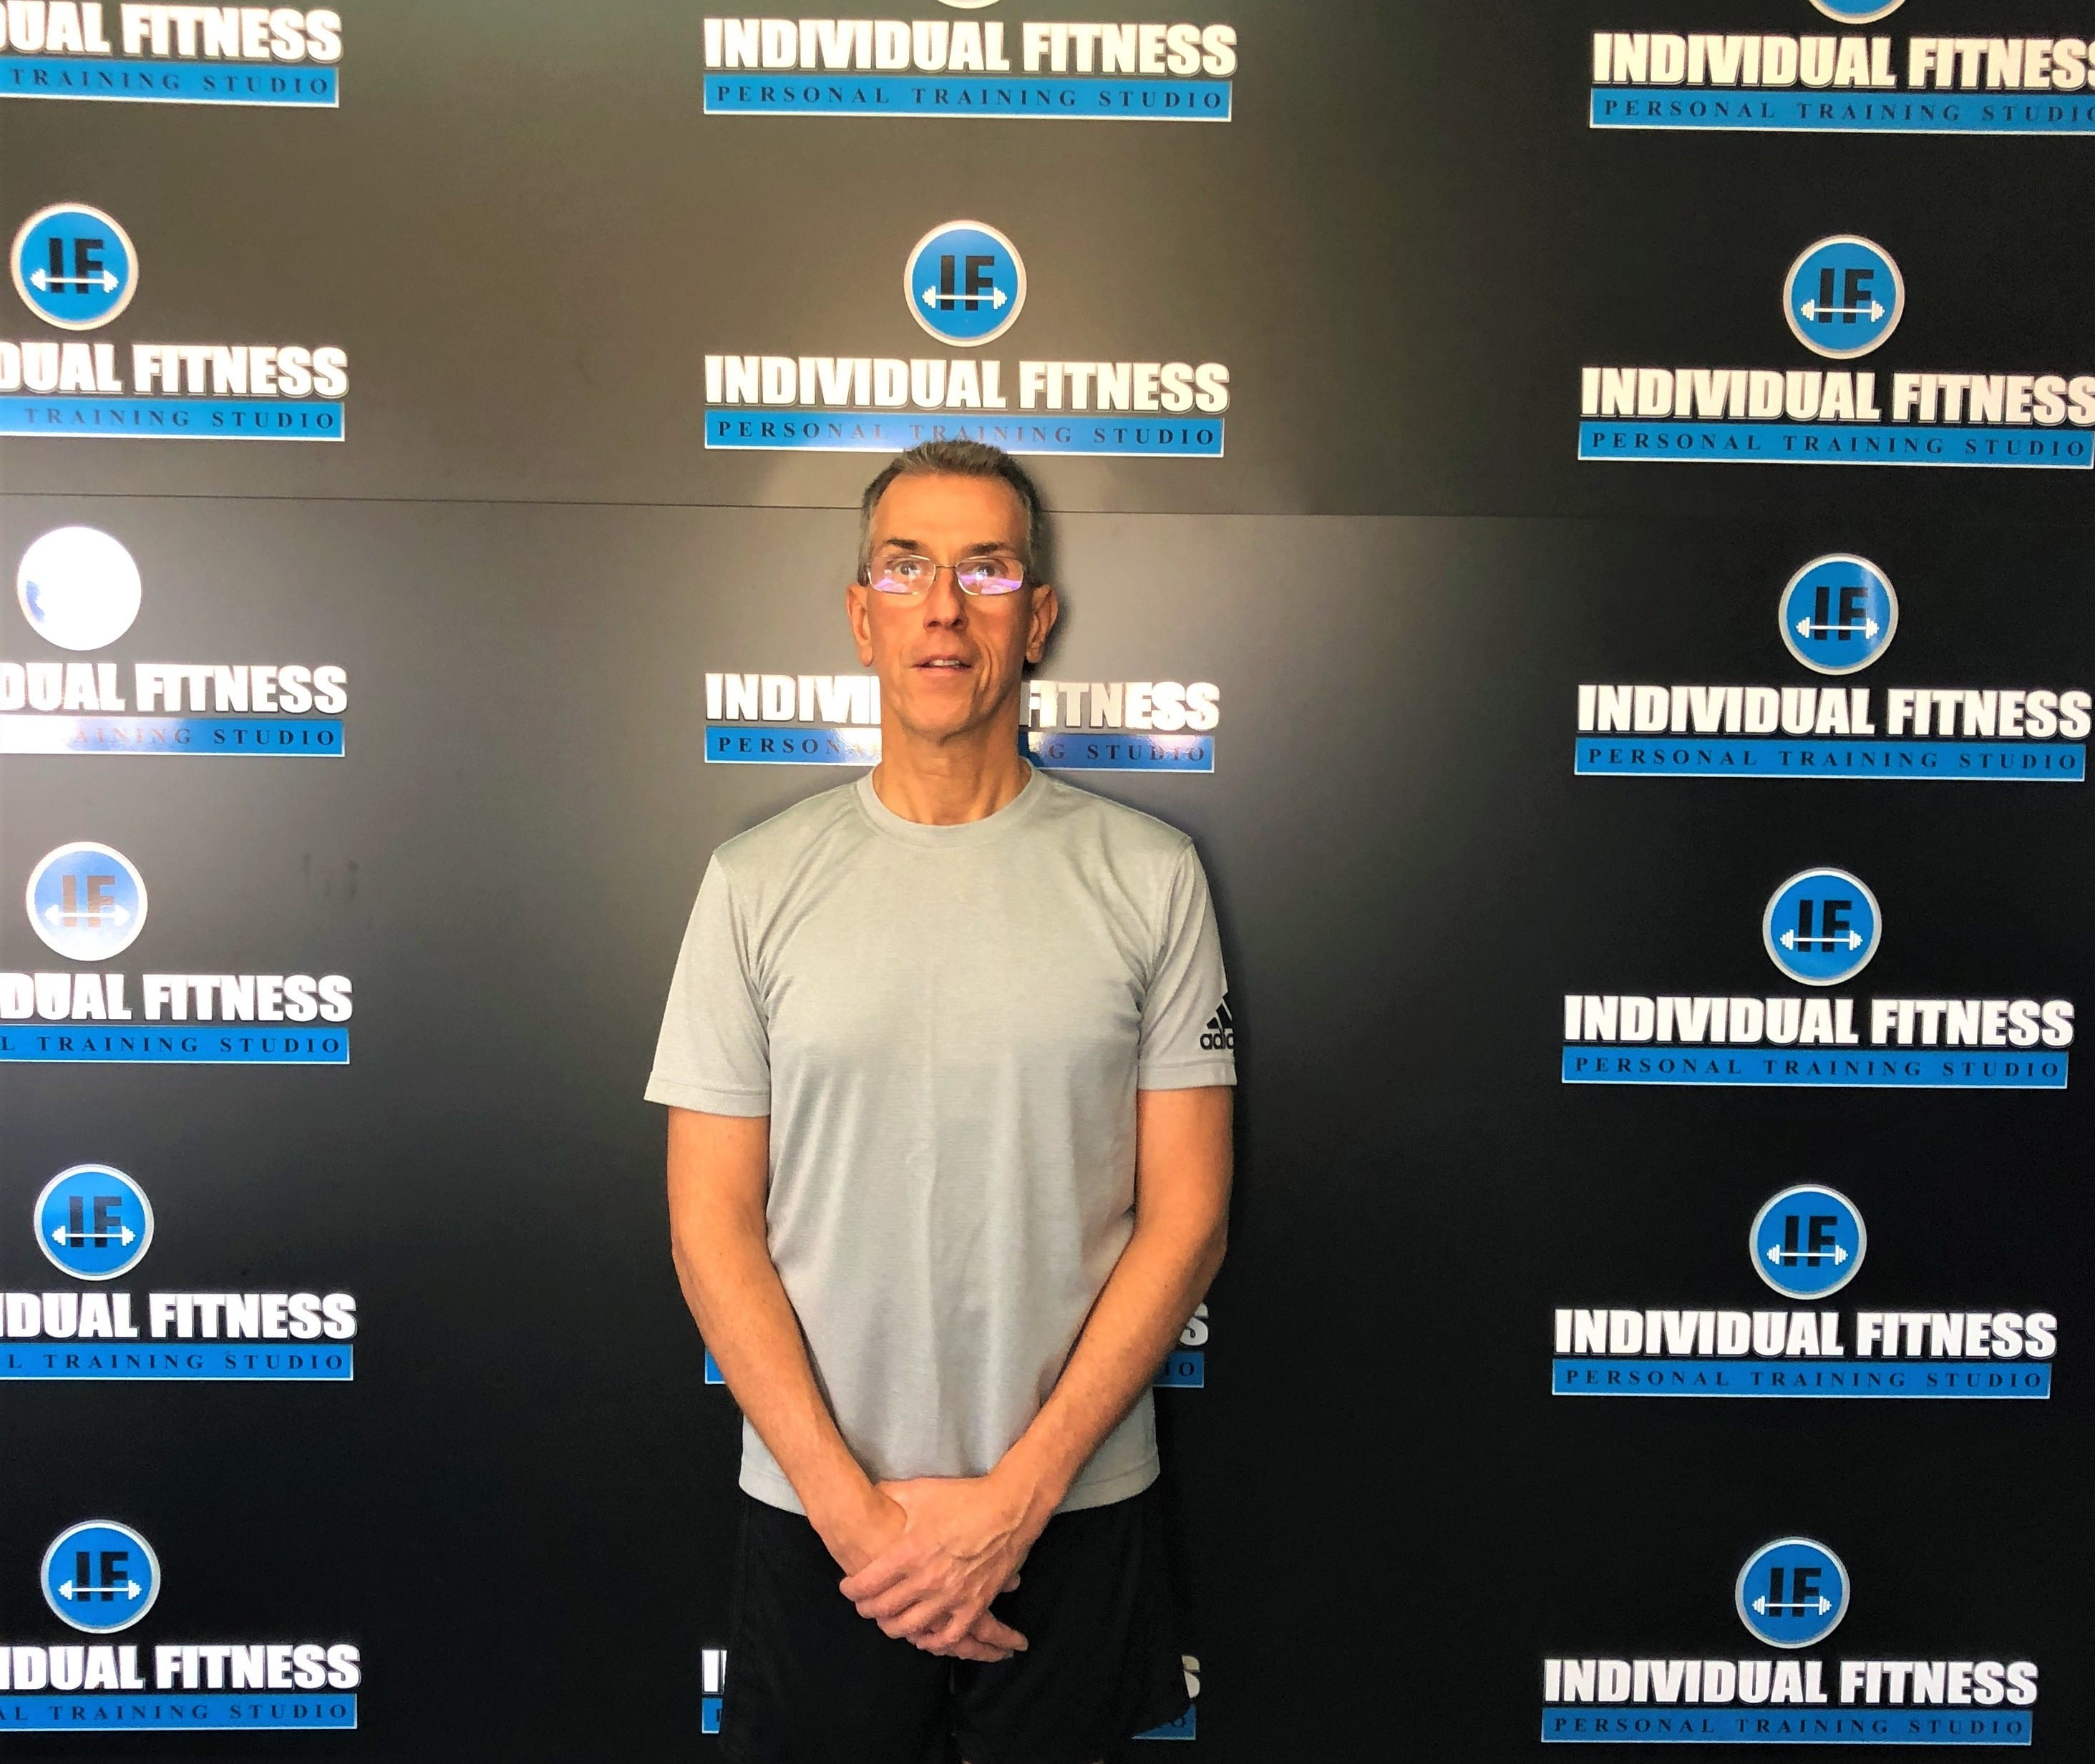 Steve Brown, Individual Fitness Testimonials